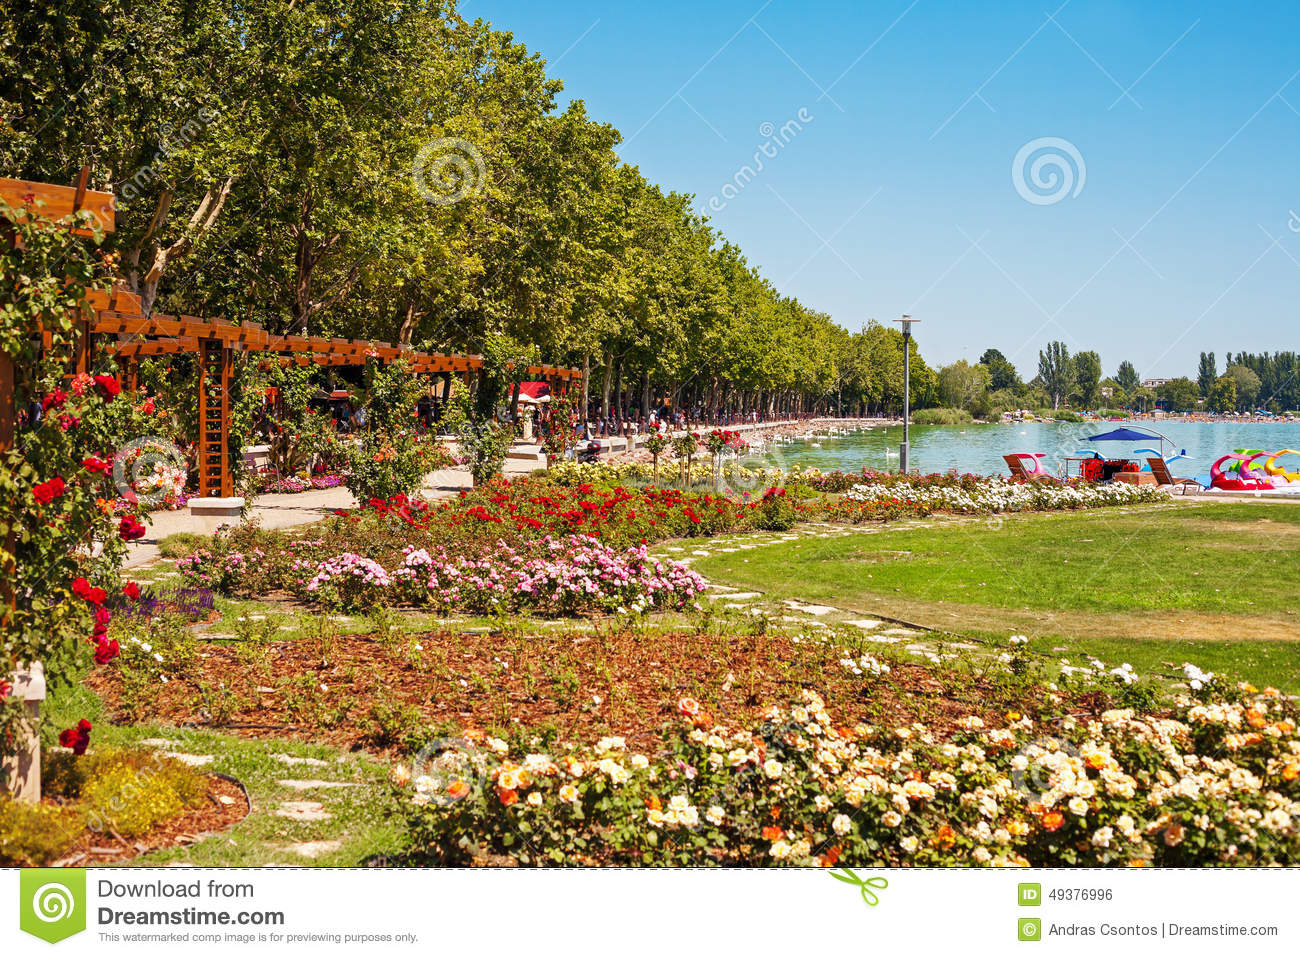 Balatonfured Hungary  City new picture : Lake Balaton beach and flower garden at Balatonfured, Hungary.